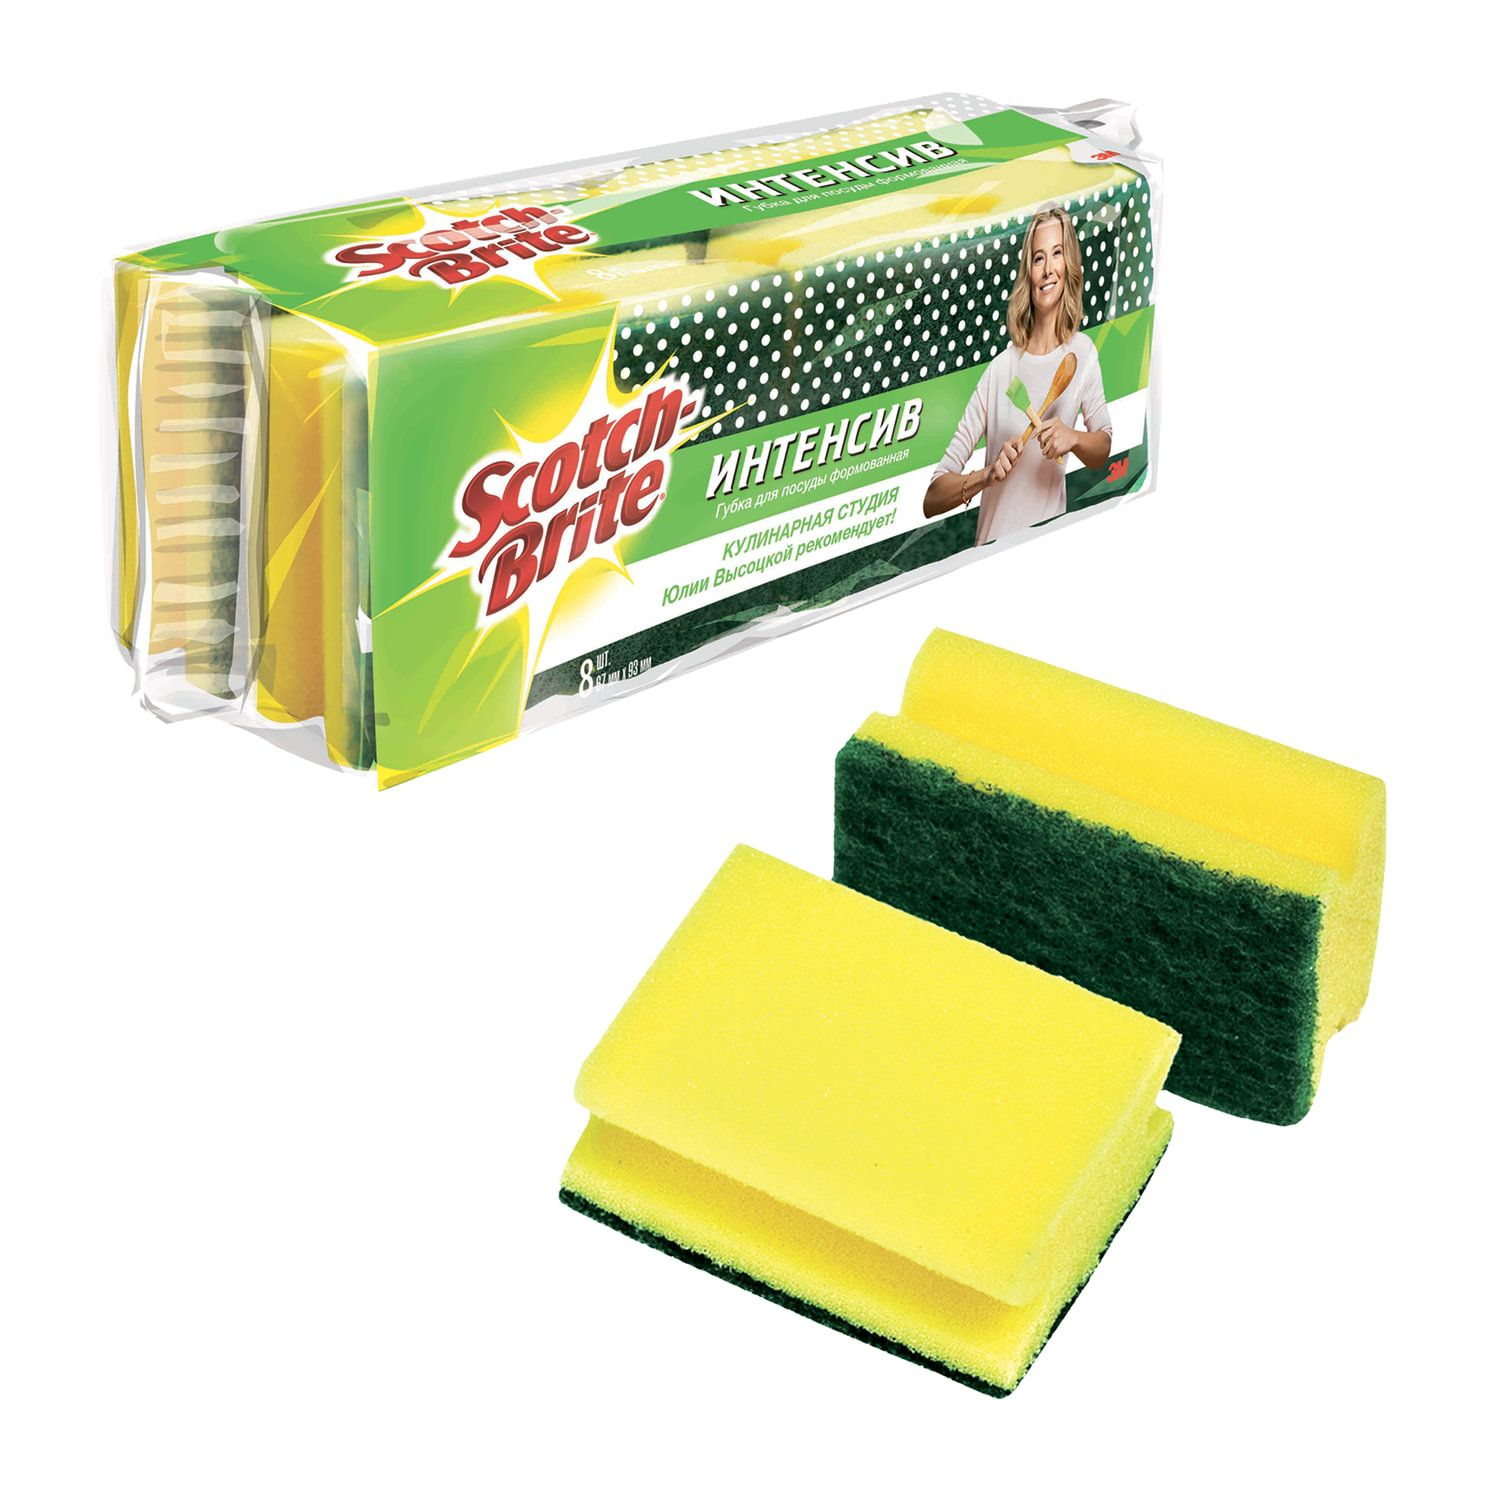 "SCOTCH-BRITE / Household sponges ""Intensive"" profile, cleaning layer, 67x93x45 mm, set of 8 pcs."